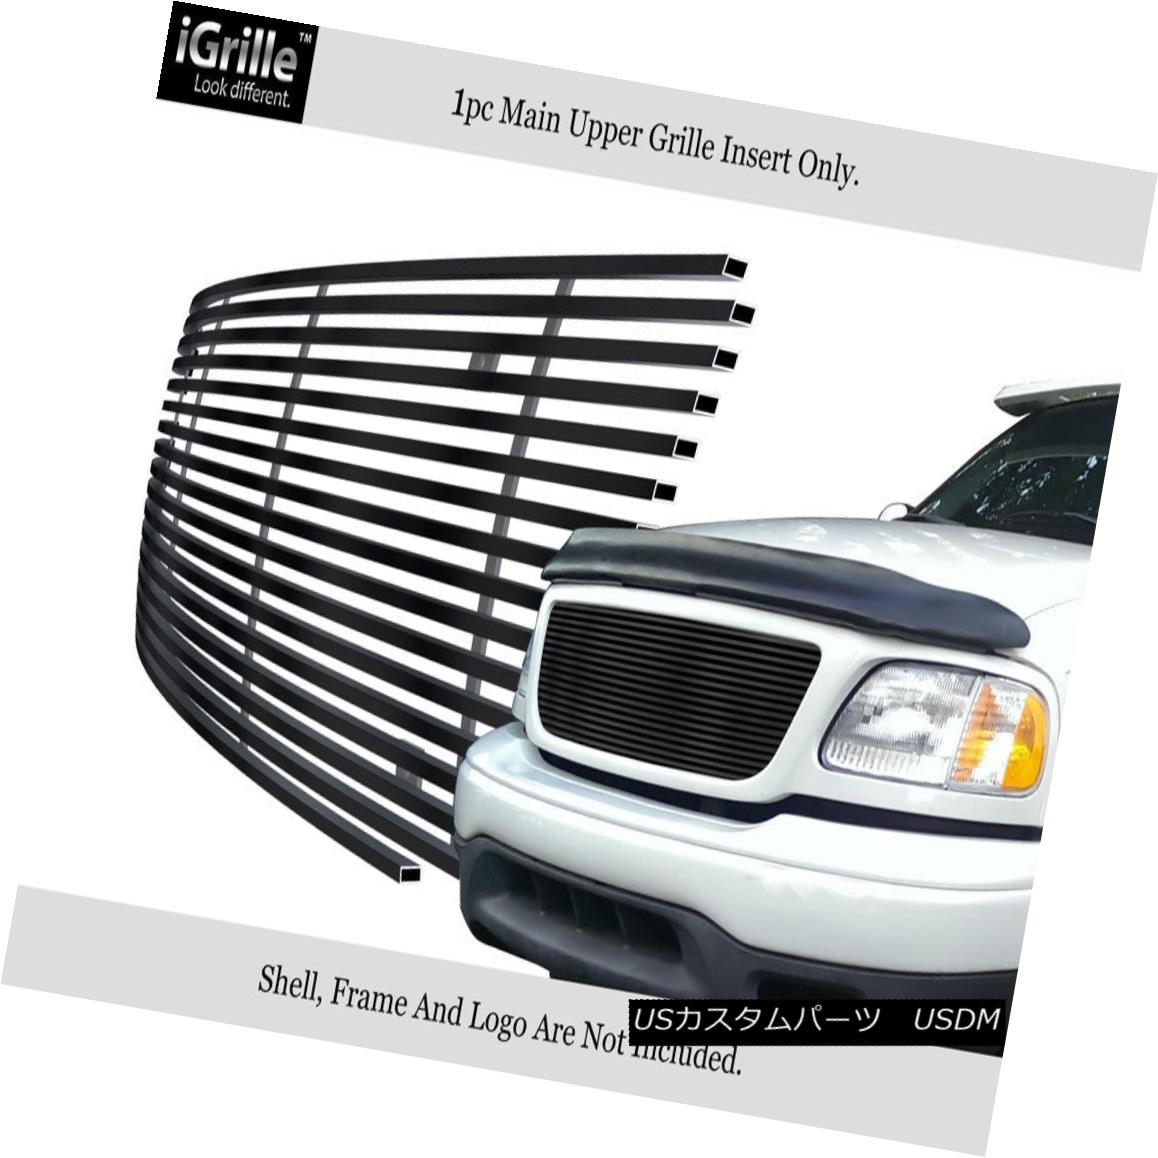 グリル Fits 1999-2003 Ford F-150/Lightning/Harley Black Stainless Steel Billet Grille 1999-2003 Ford F-150 / Lightnin g / Harley Black Stainless Steel Billet Grilleに適合